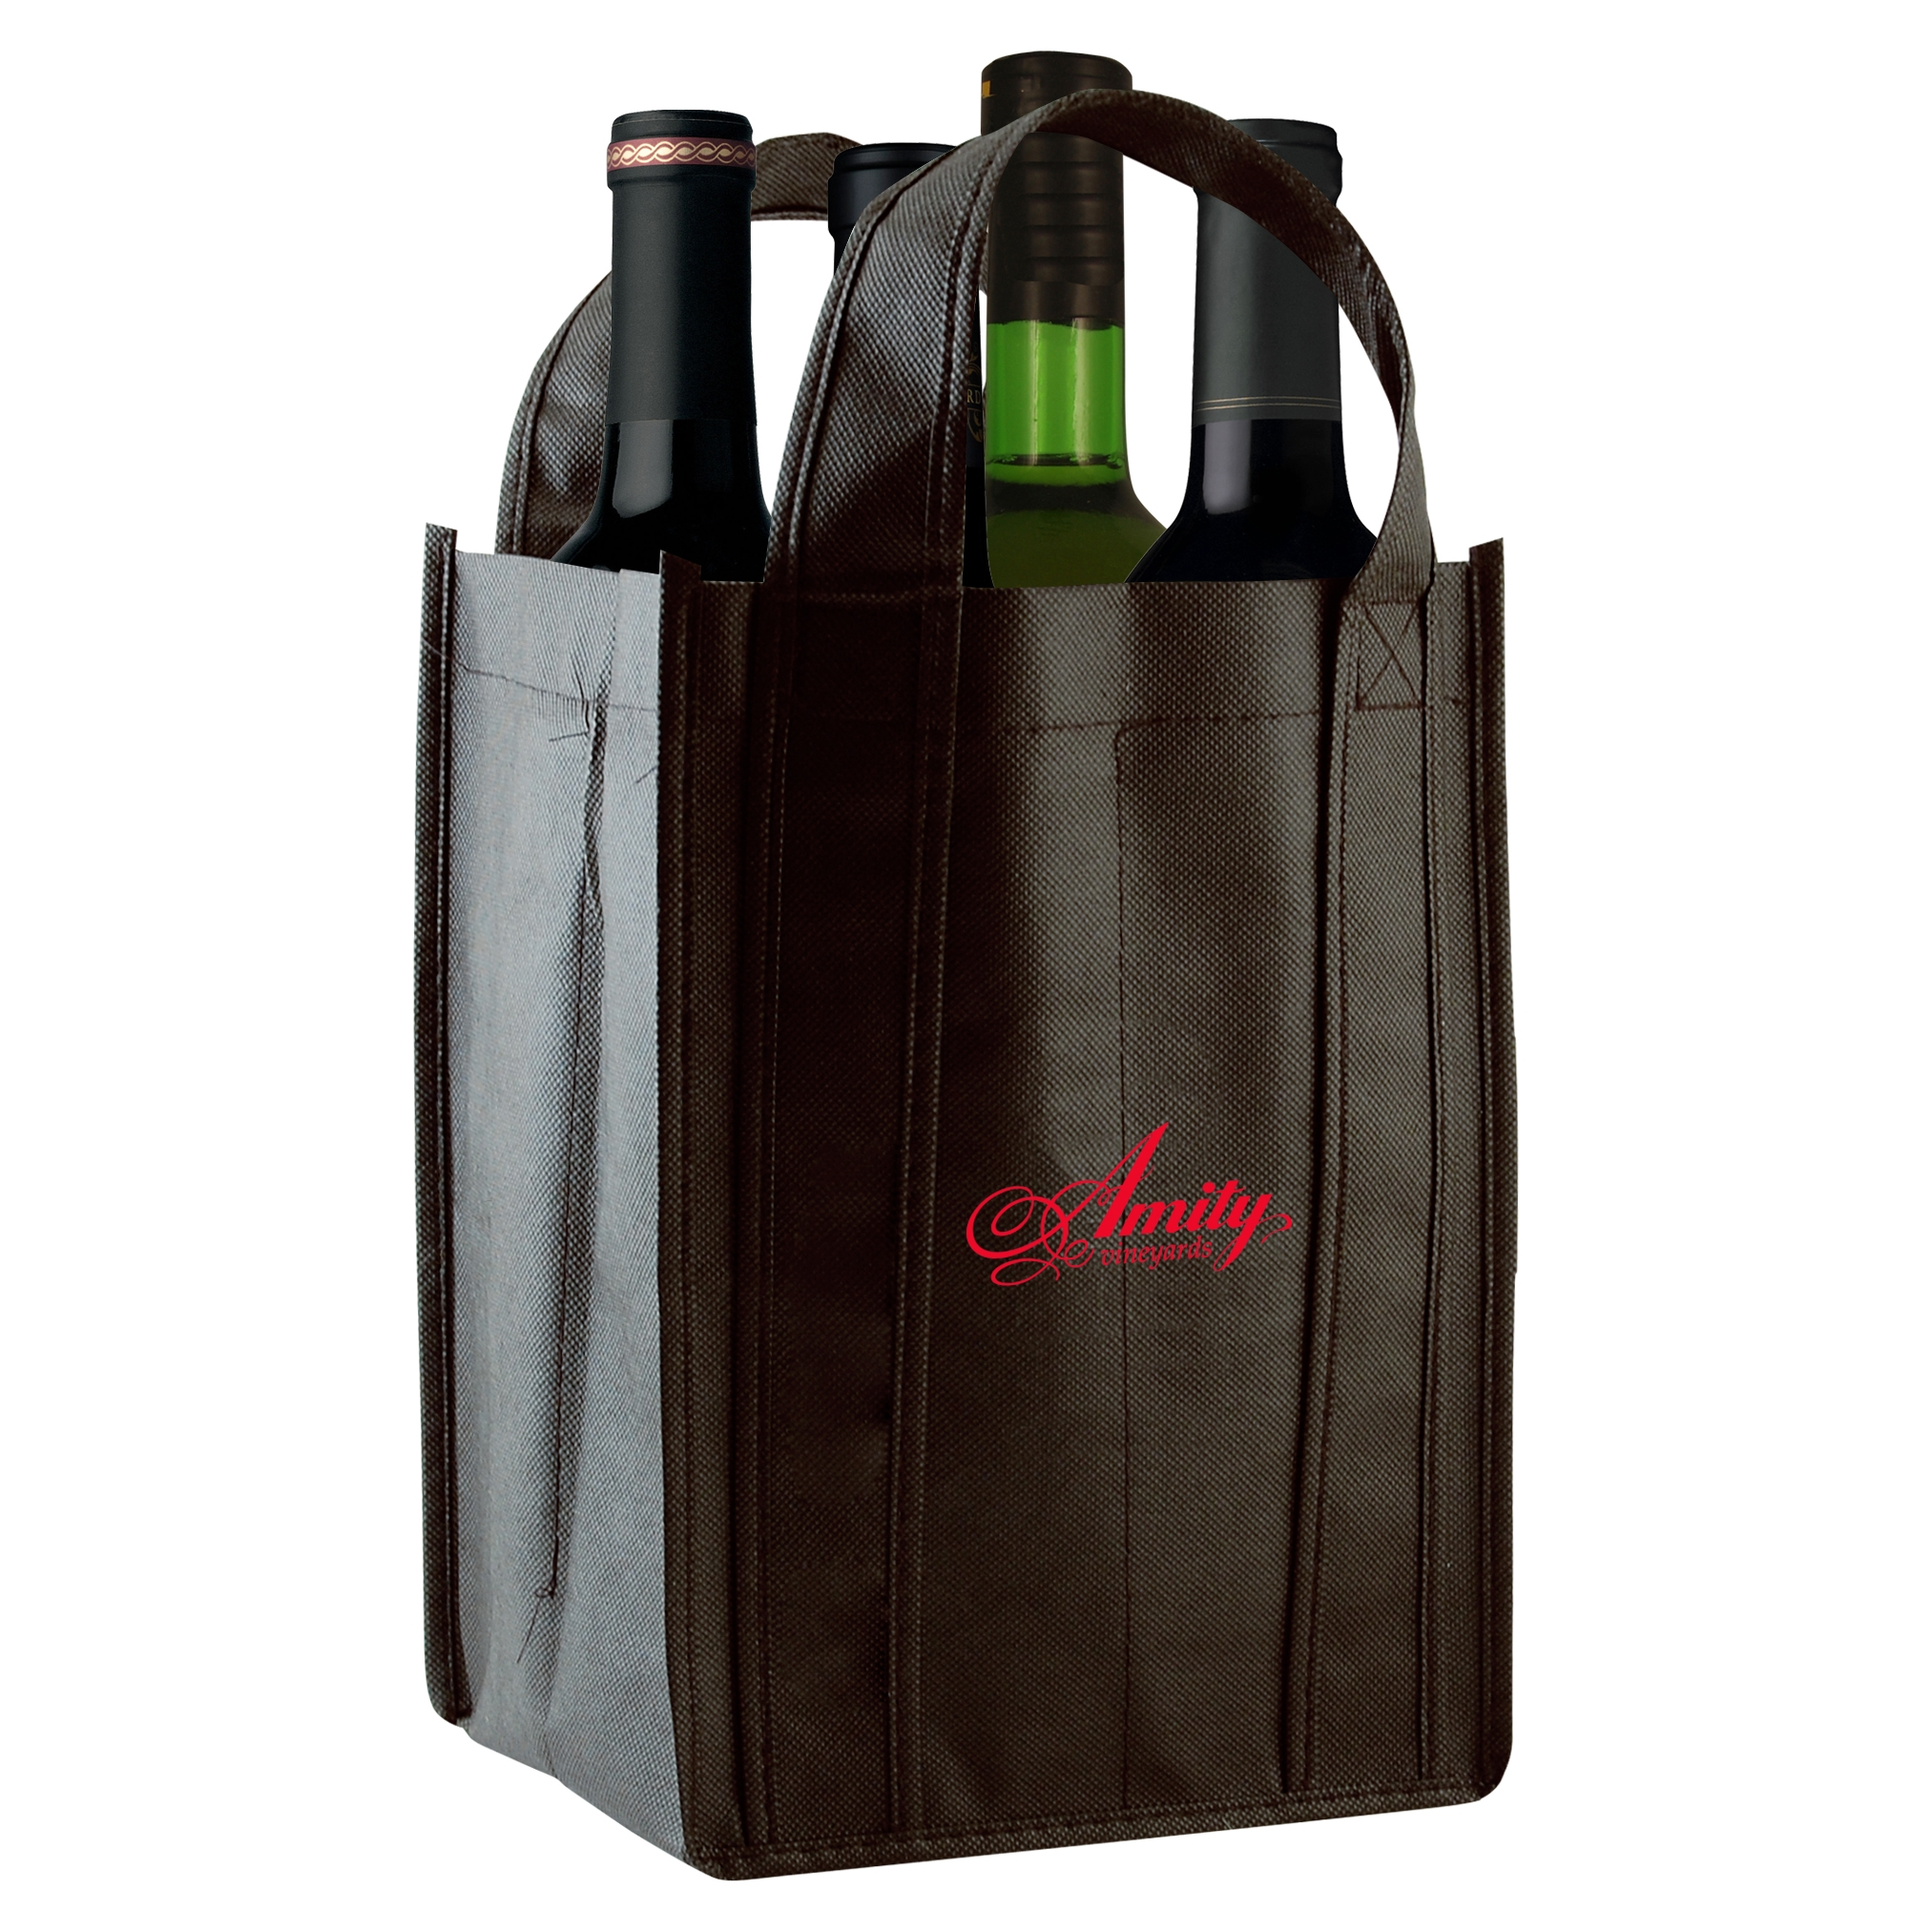 4-bottle-wine-bag-picture-1.jpg